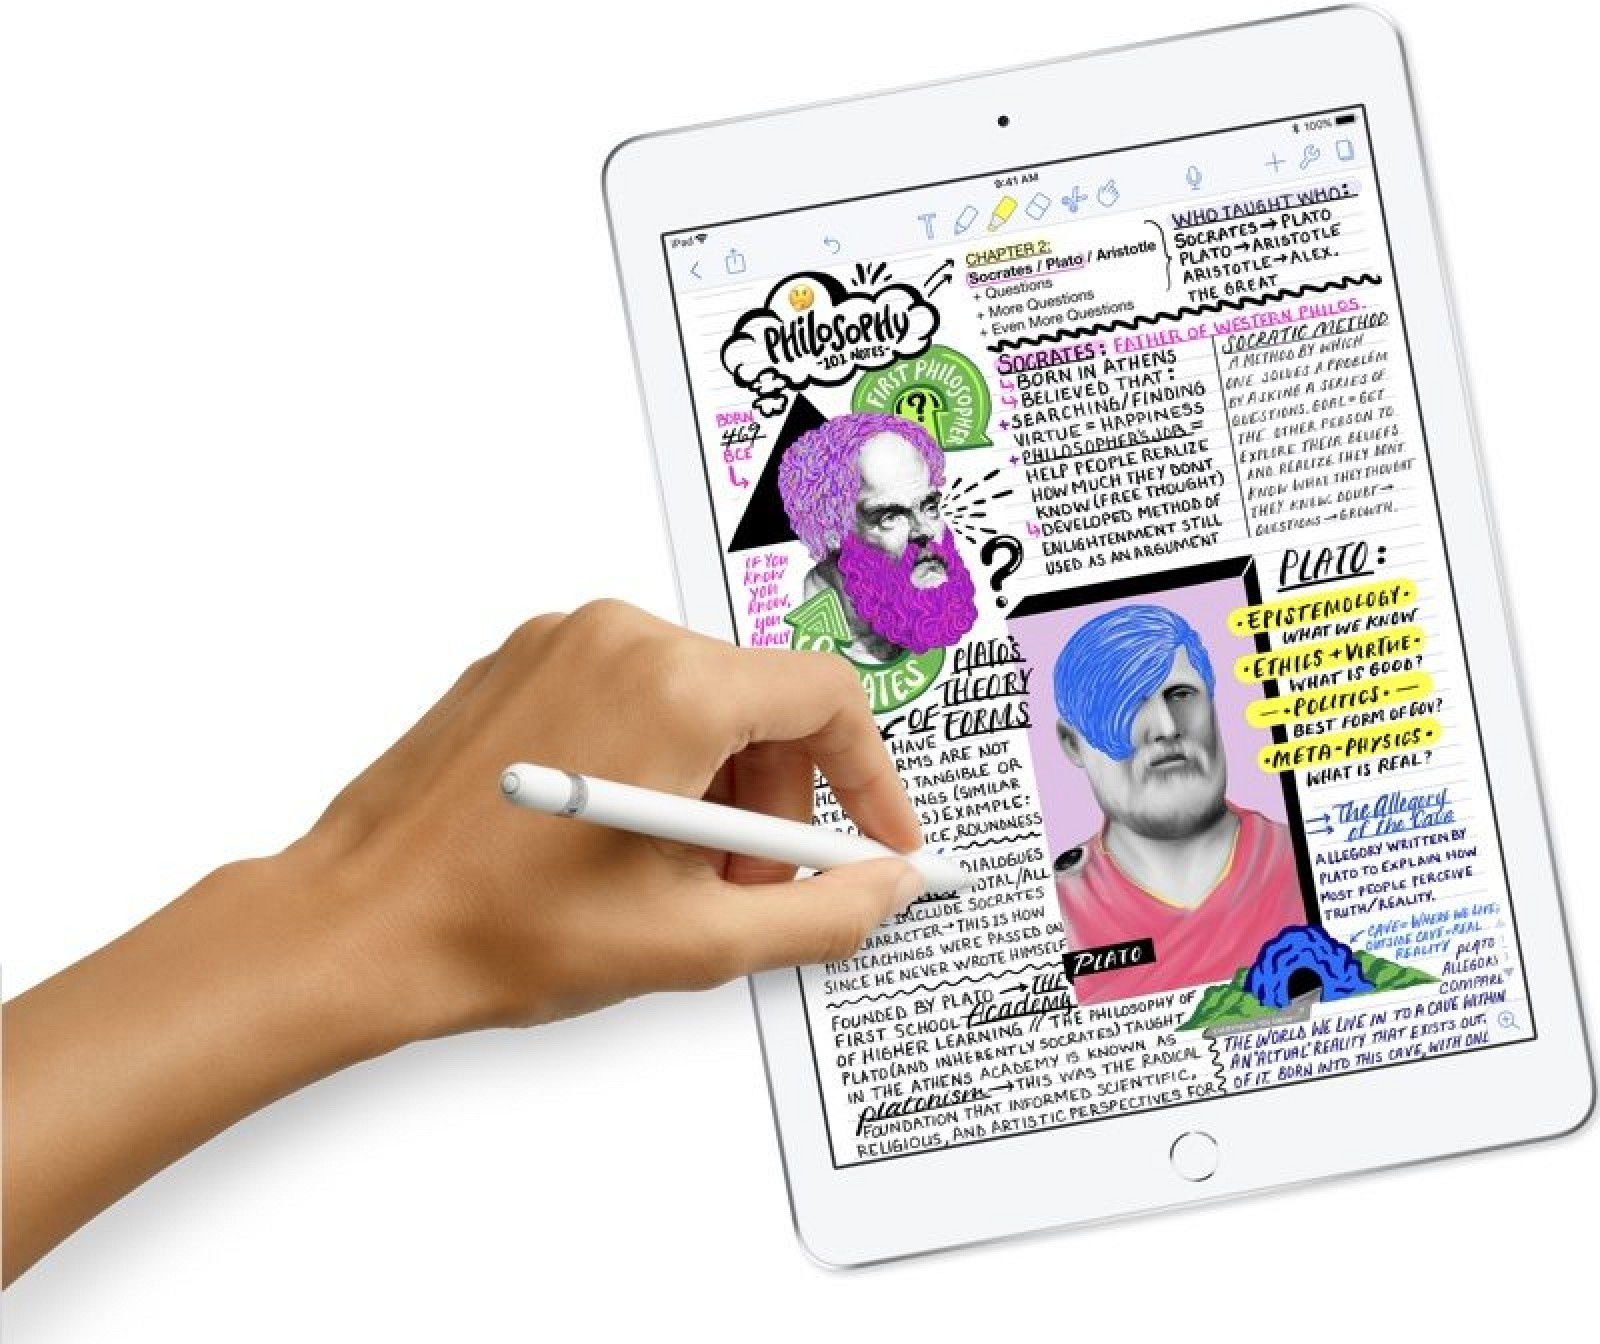 World News Guru April 04 2018 Elex Idea Blog Electronic Watchdog How To Get The Most Out Of Your New Sixth Generation Ipad